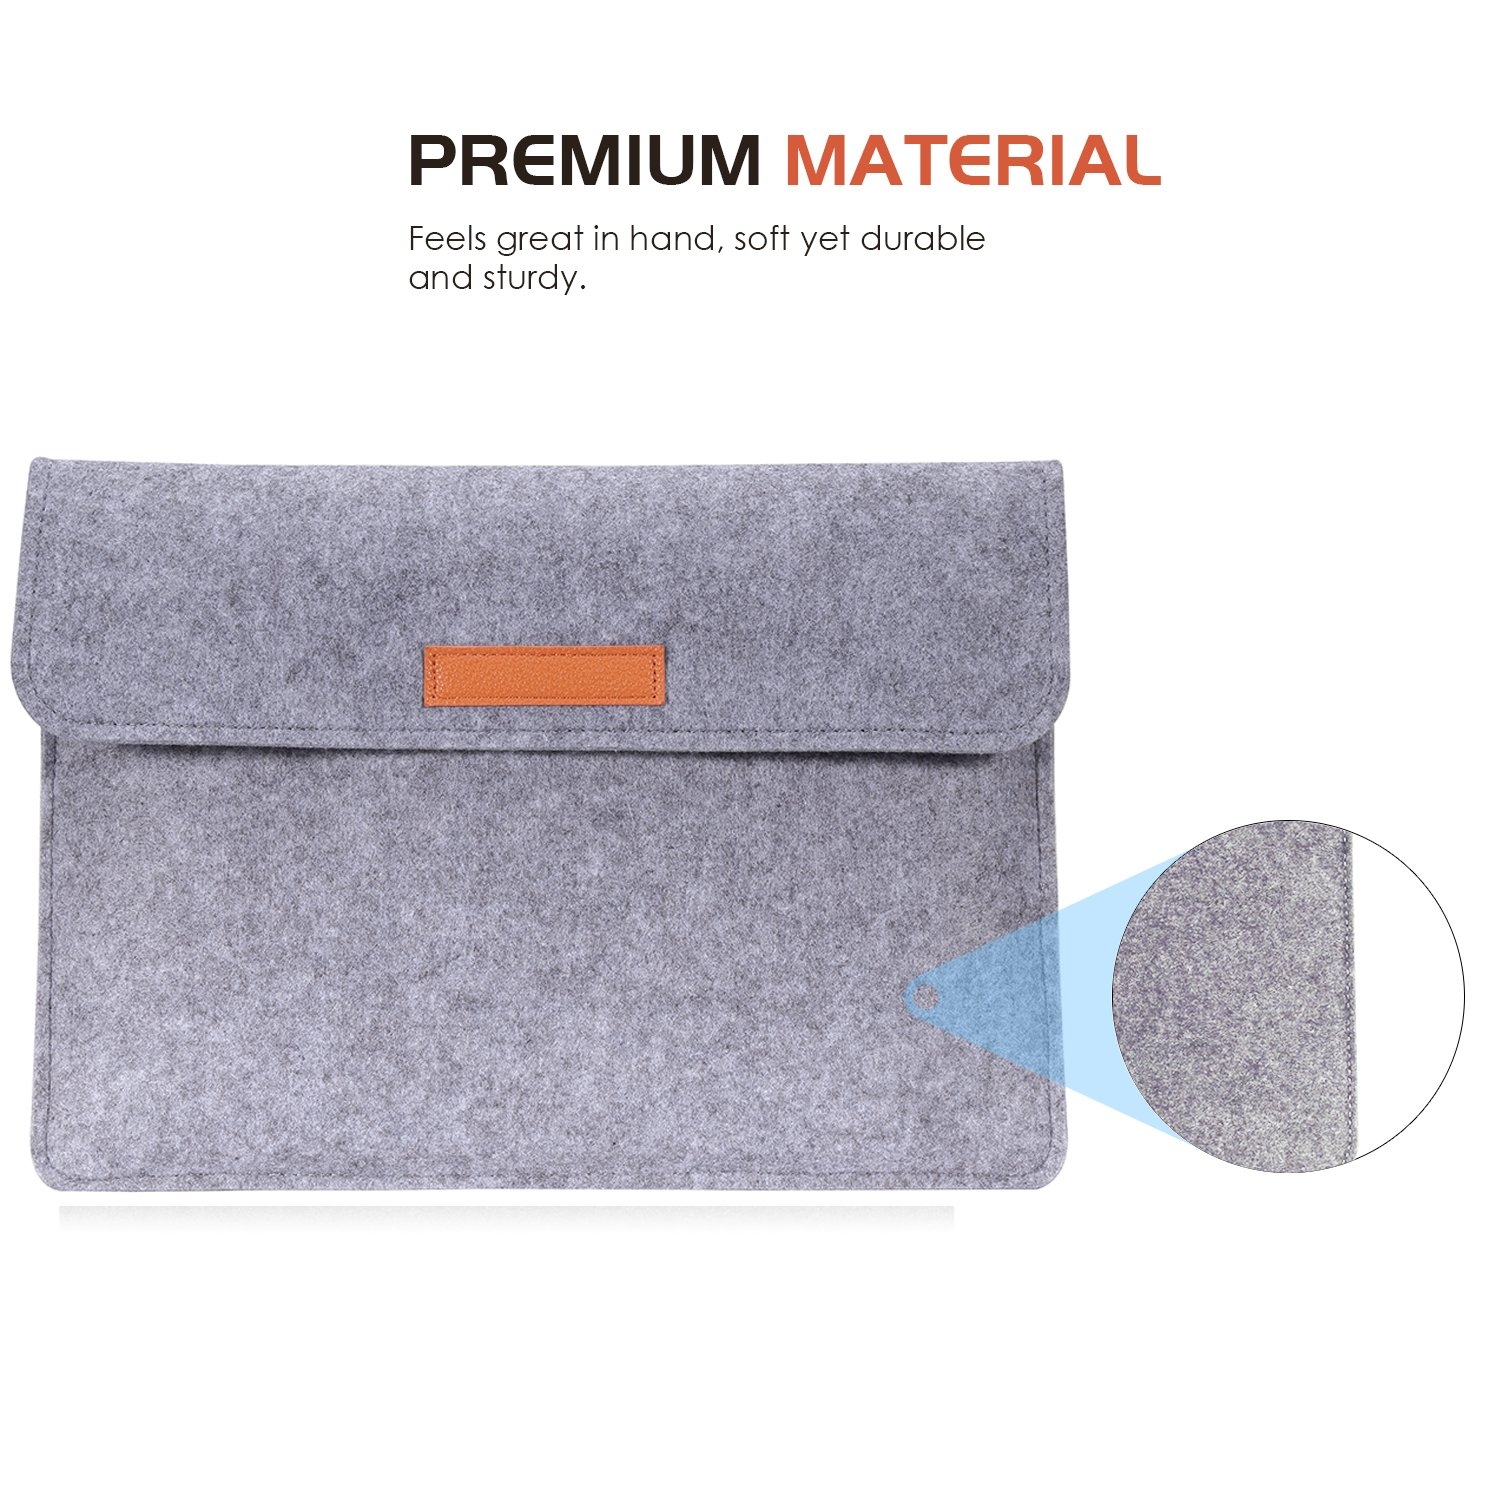 MoKo 13.5 Inch Laptop Sleeve Case Bag Compatible with Surface Laptop 2 // Surface Book 2 13.5 Dark Gray with Small Felt Bag /& Two Back Pockets Felt Protective Ultrabook Carrying Case Cover